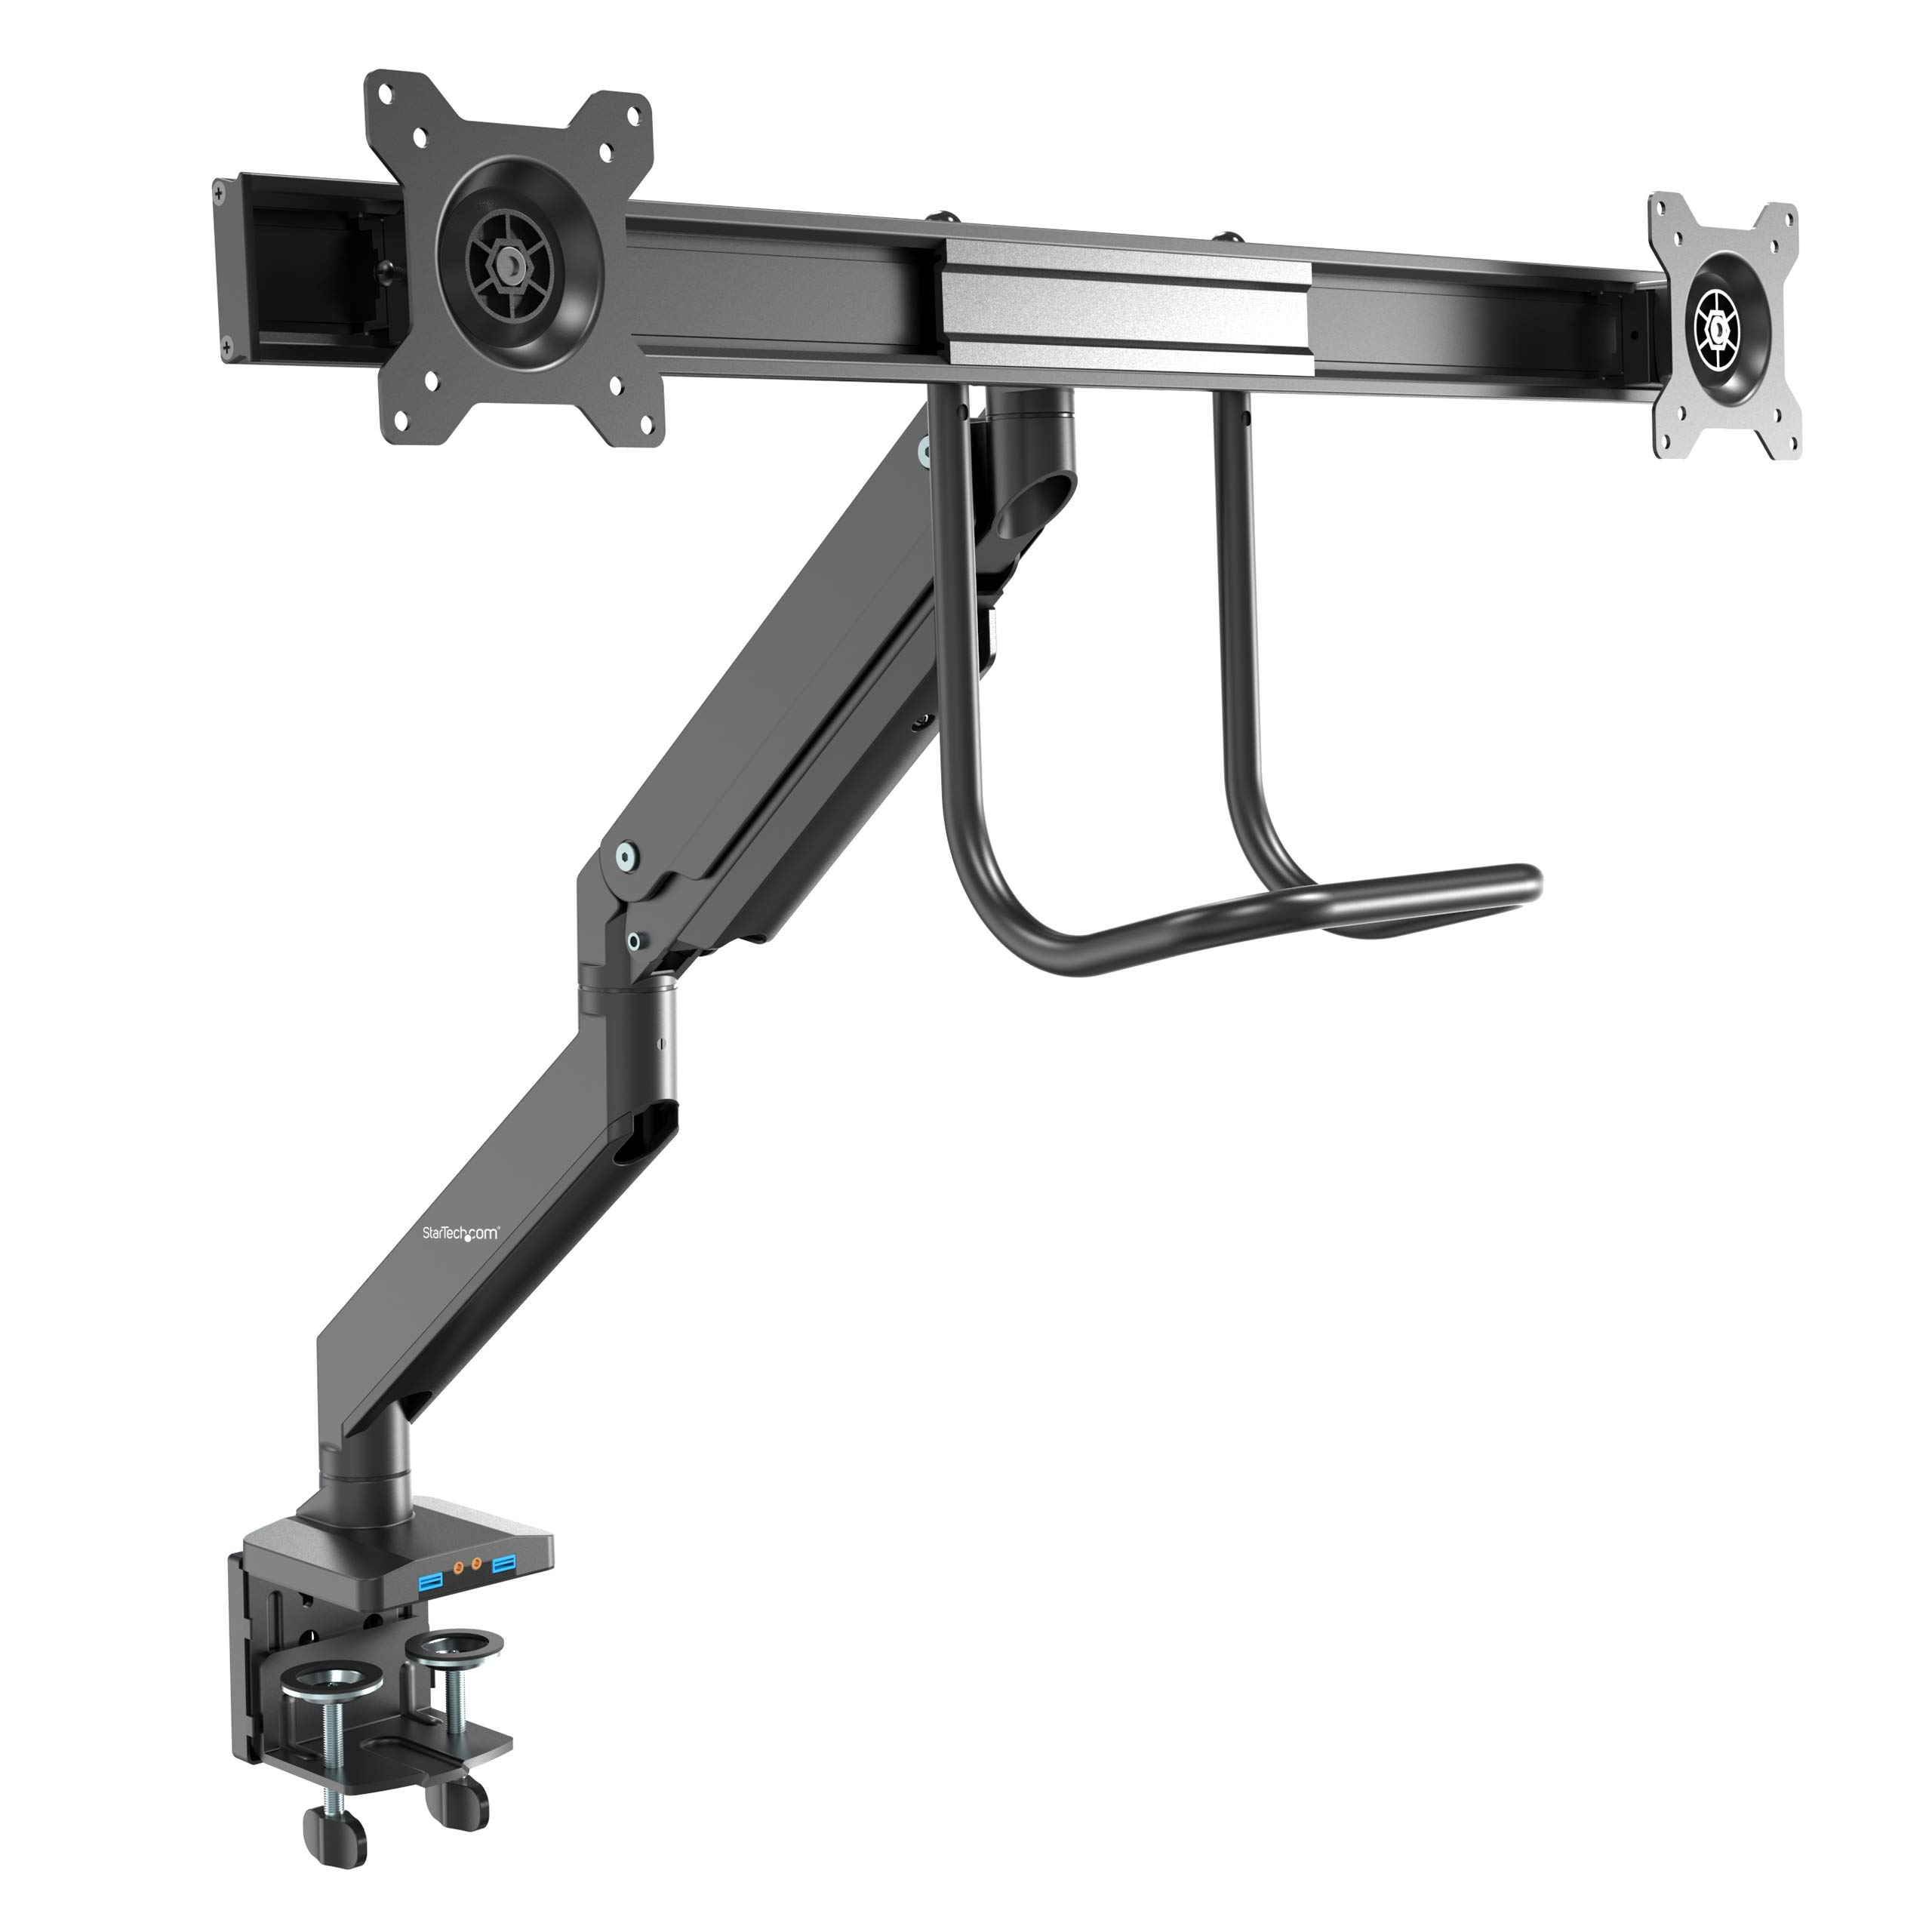 "StarTech.com Desk Mount Dual Monitor Arm with USB & Audio - Slim Full Motion Adjustable Dual Monitor VESA Mount for up to 32"" Displays - Ergonomic Articulating - C-Clamp/Grommet (ARMSLIMDUAL2USB3)"